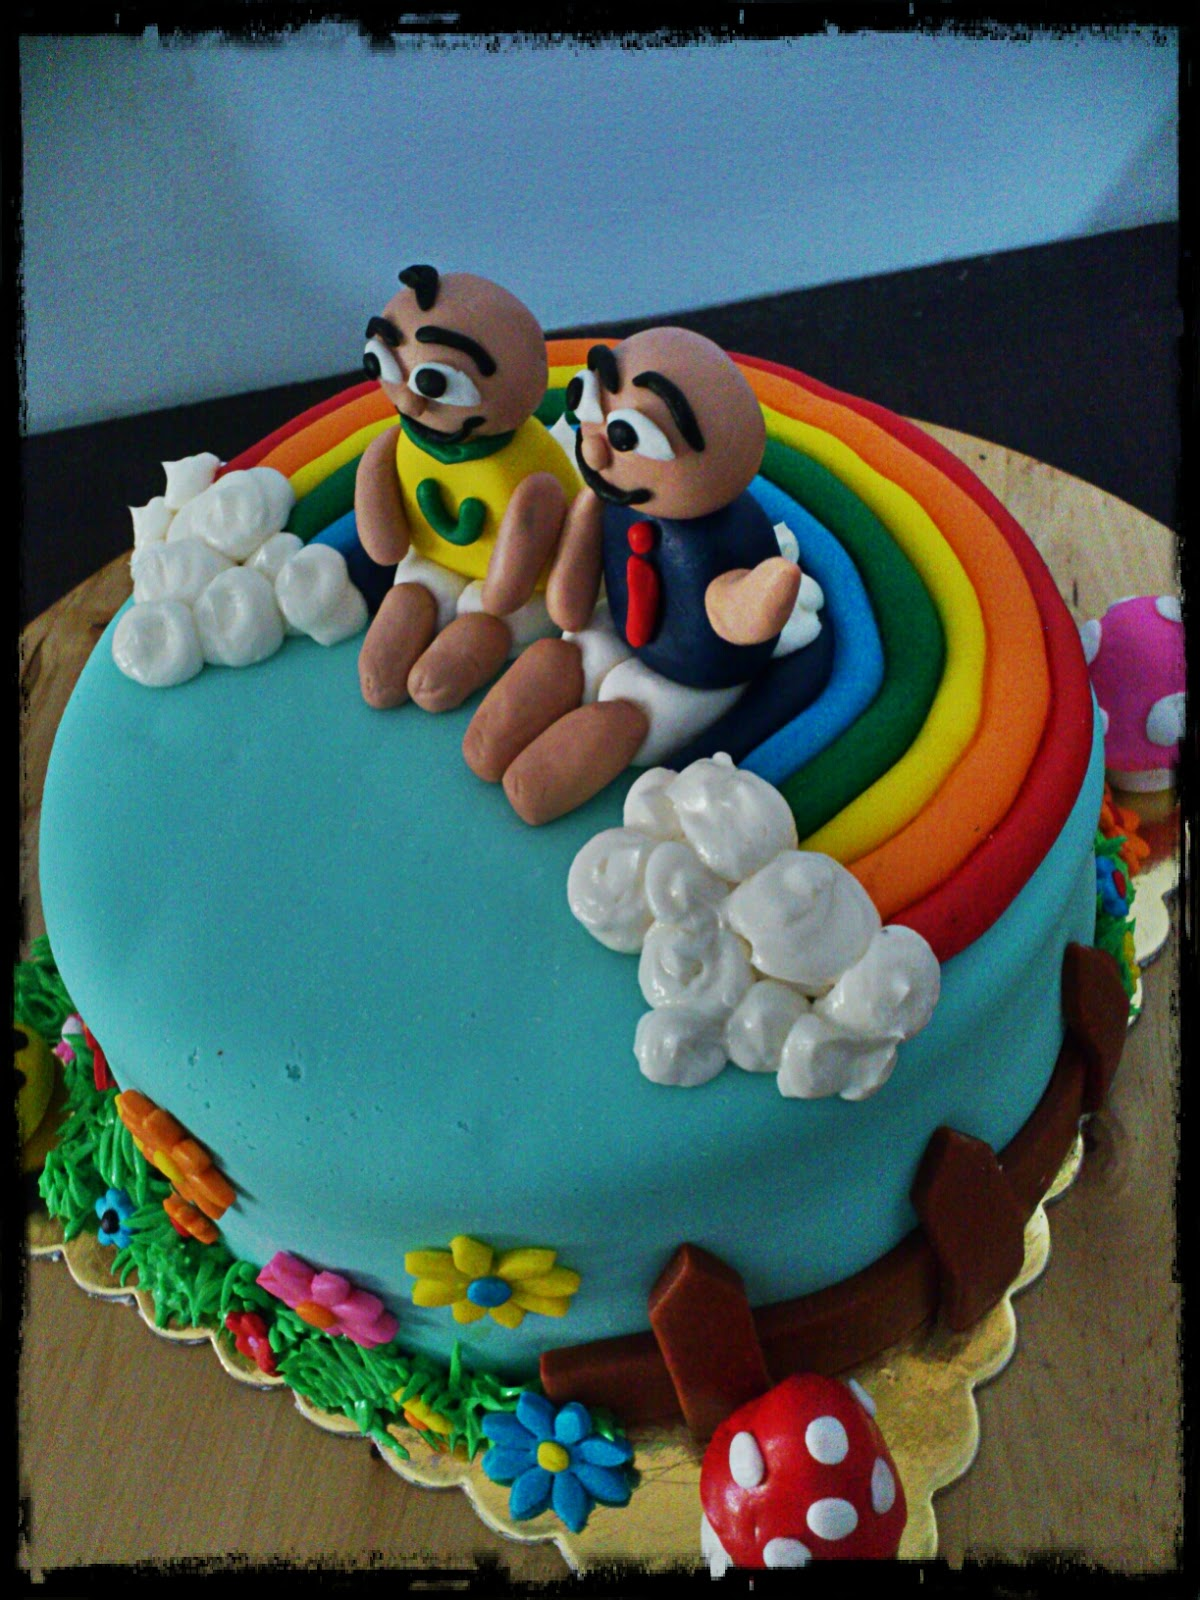 pandacookiss: Upin & Ipin themed birthday cake :)